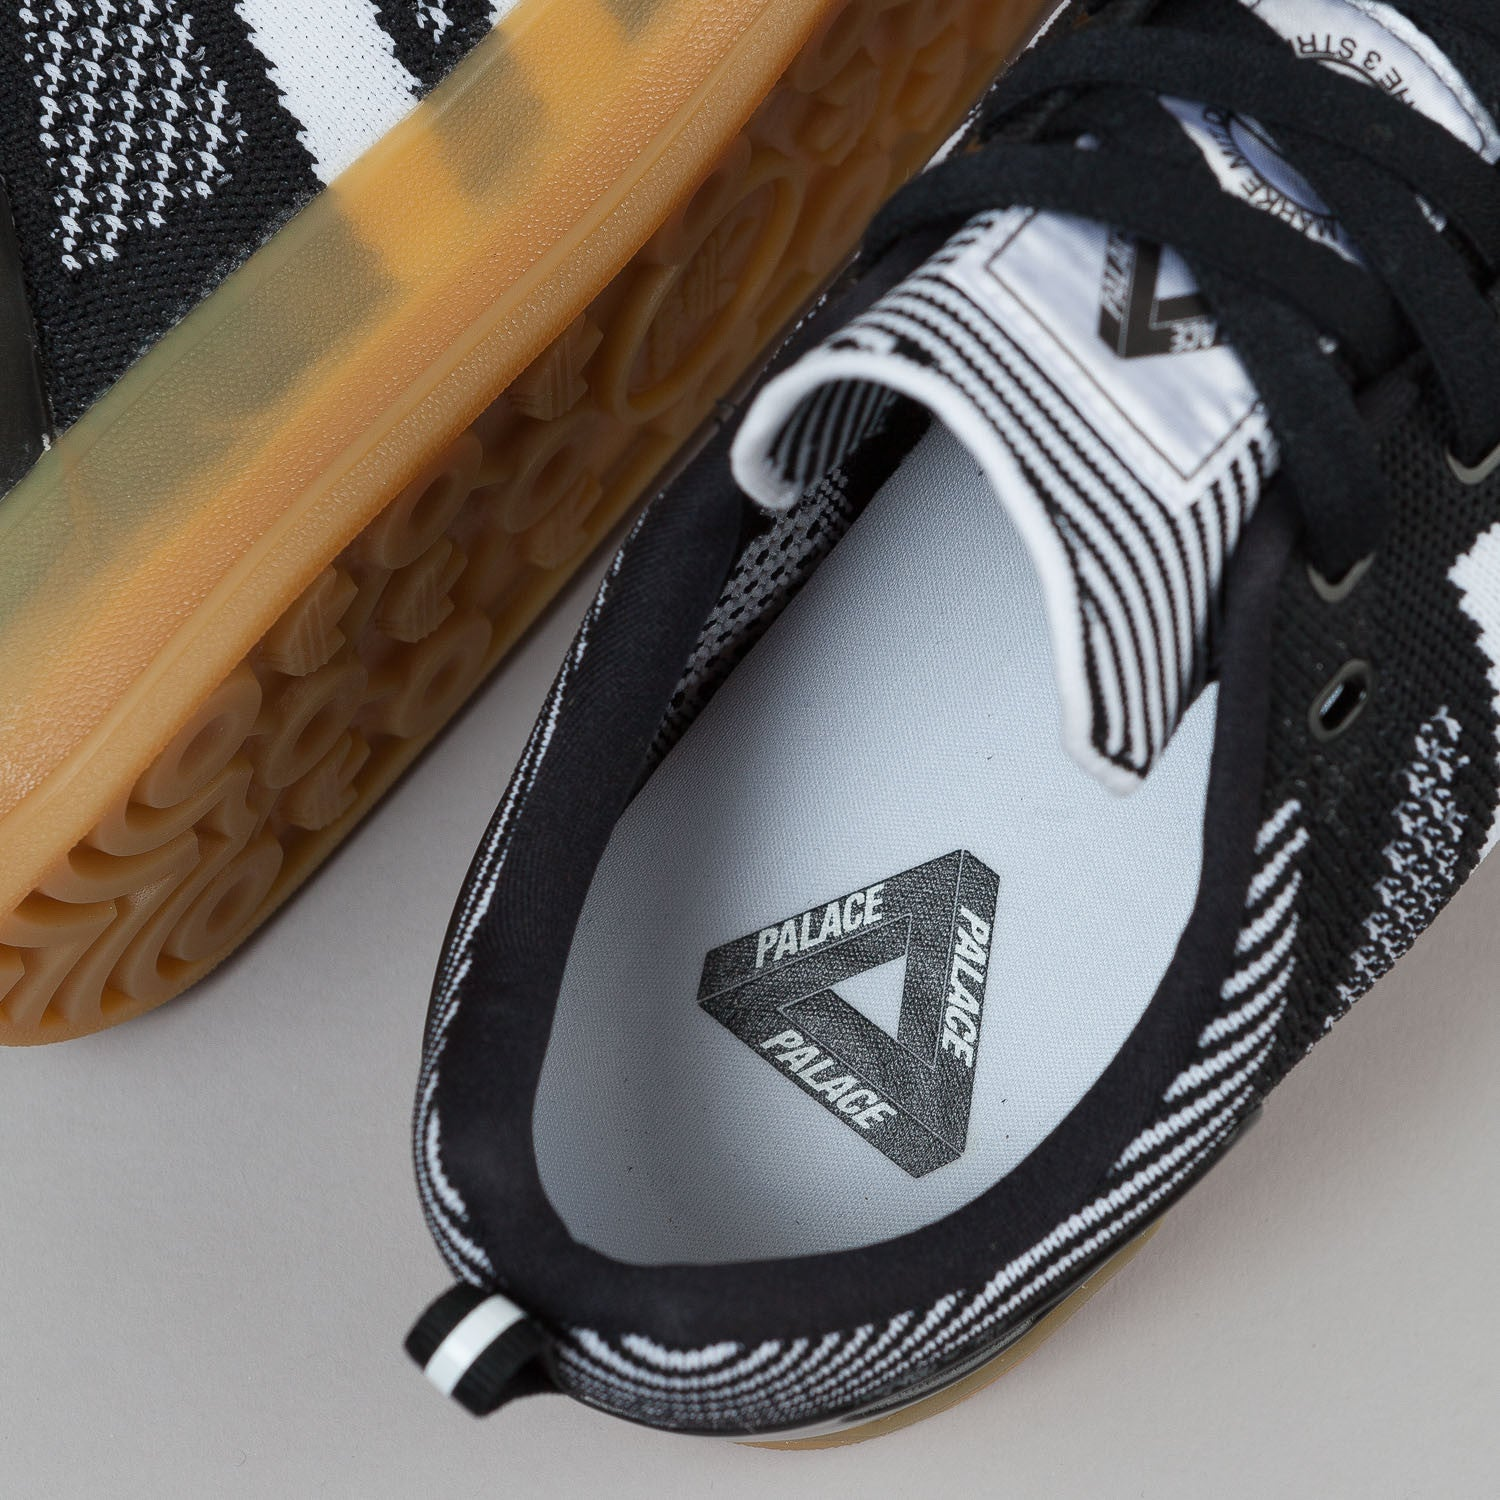 Adidas X Palace Pro Primeknit Shoes - Black / White / Gum